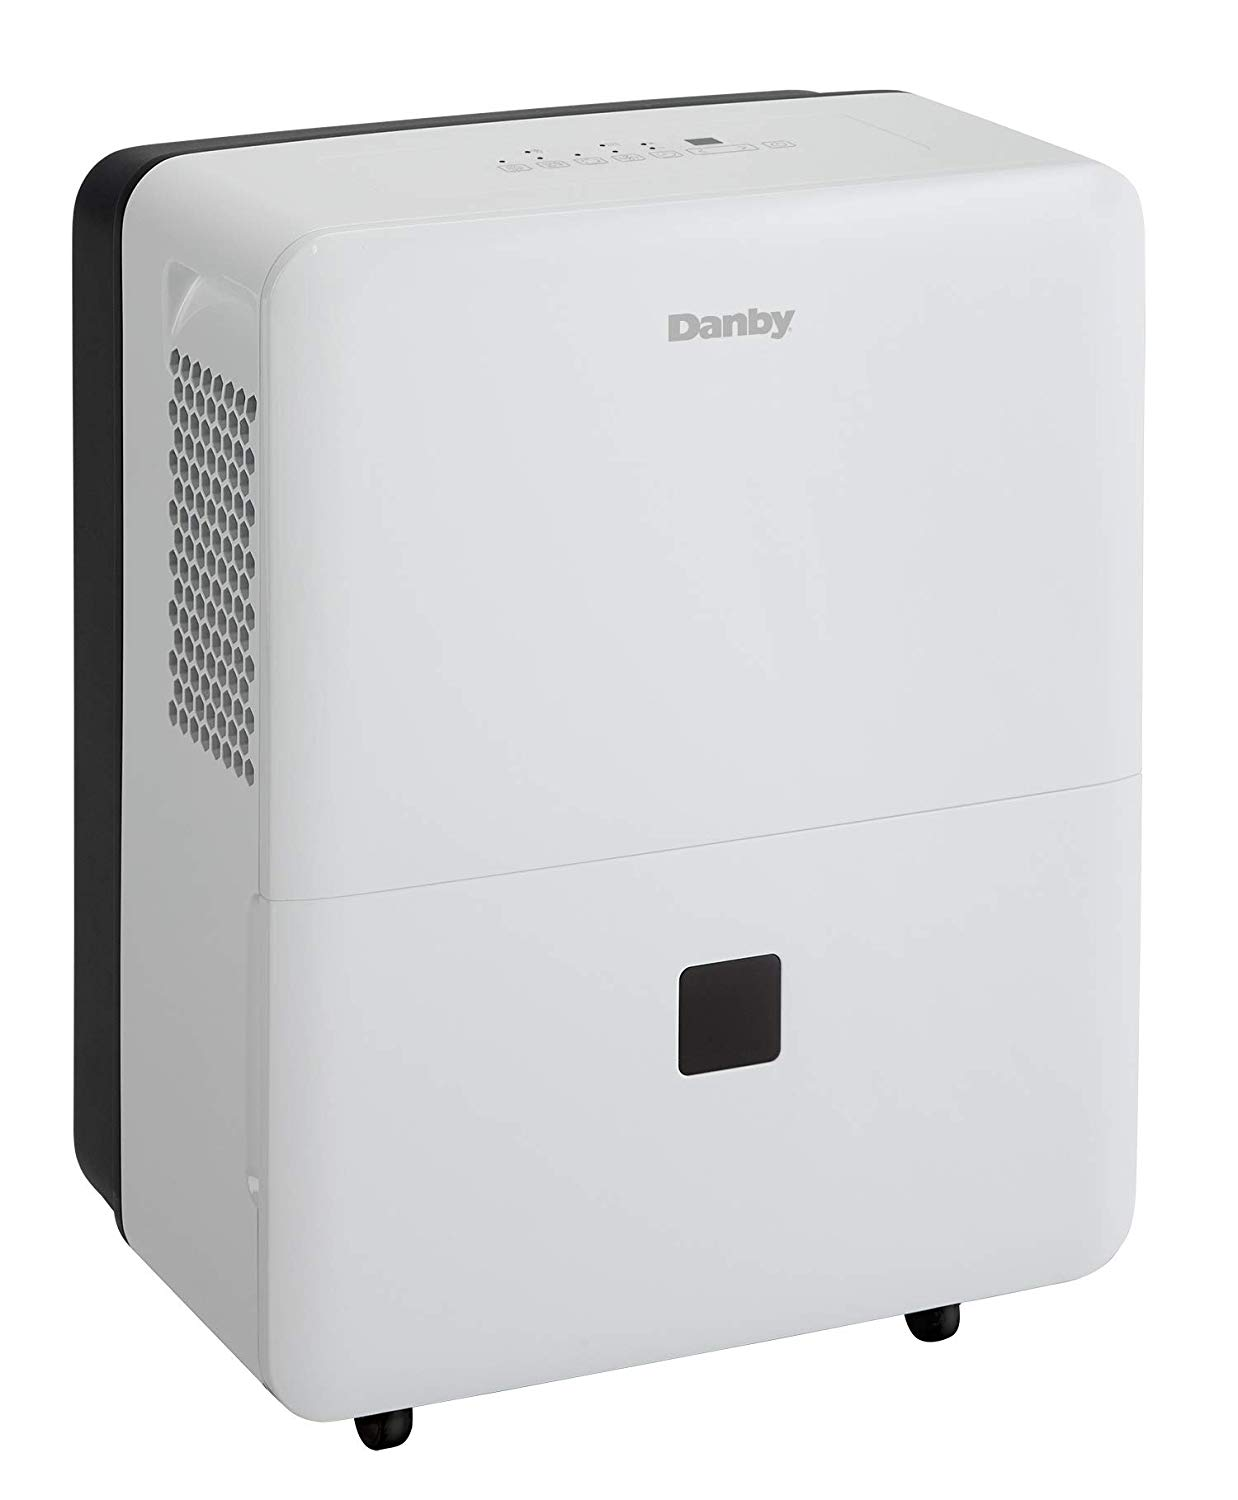 Danby DDR030BDWDB Energy Star 30 pint Dehumidifier